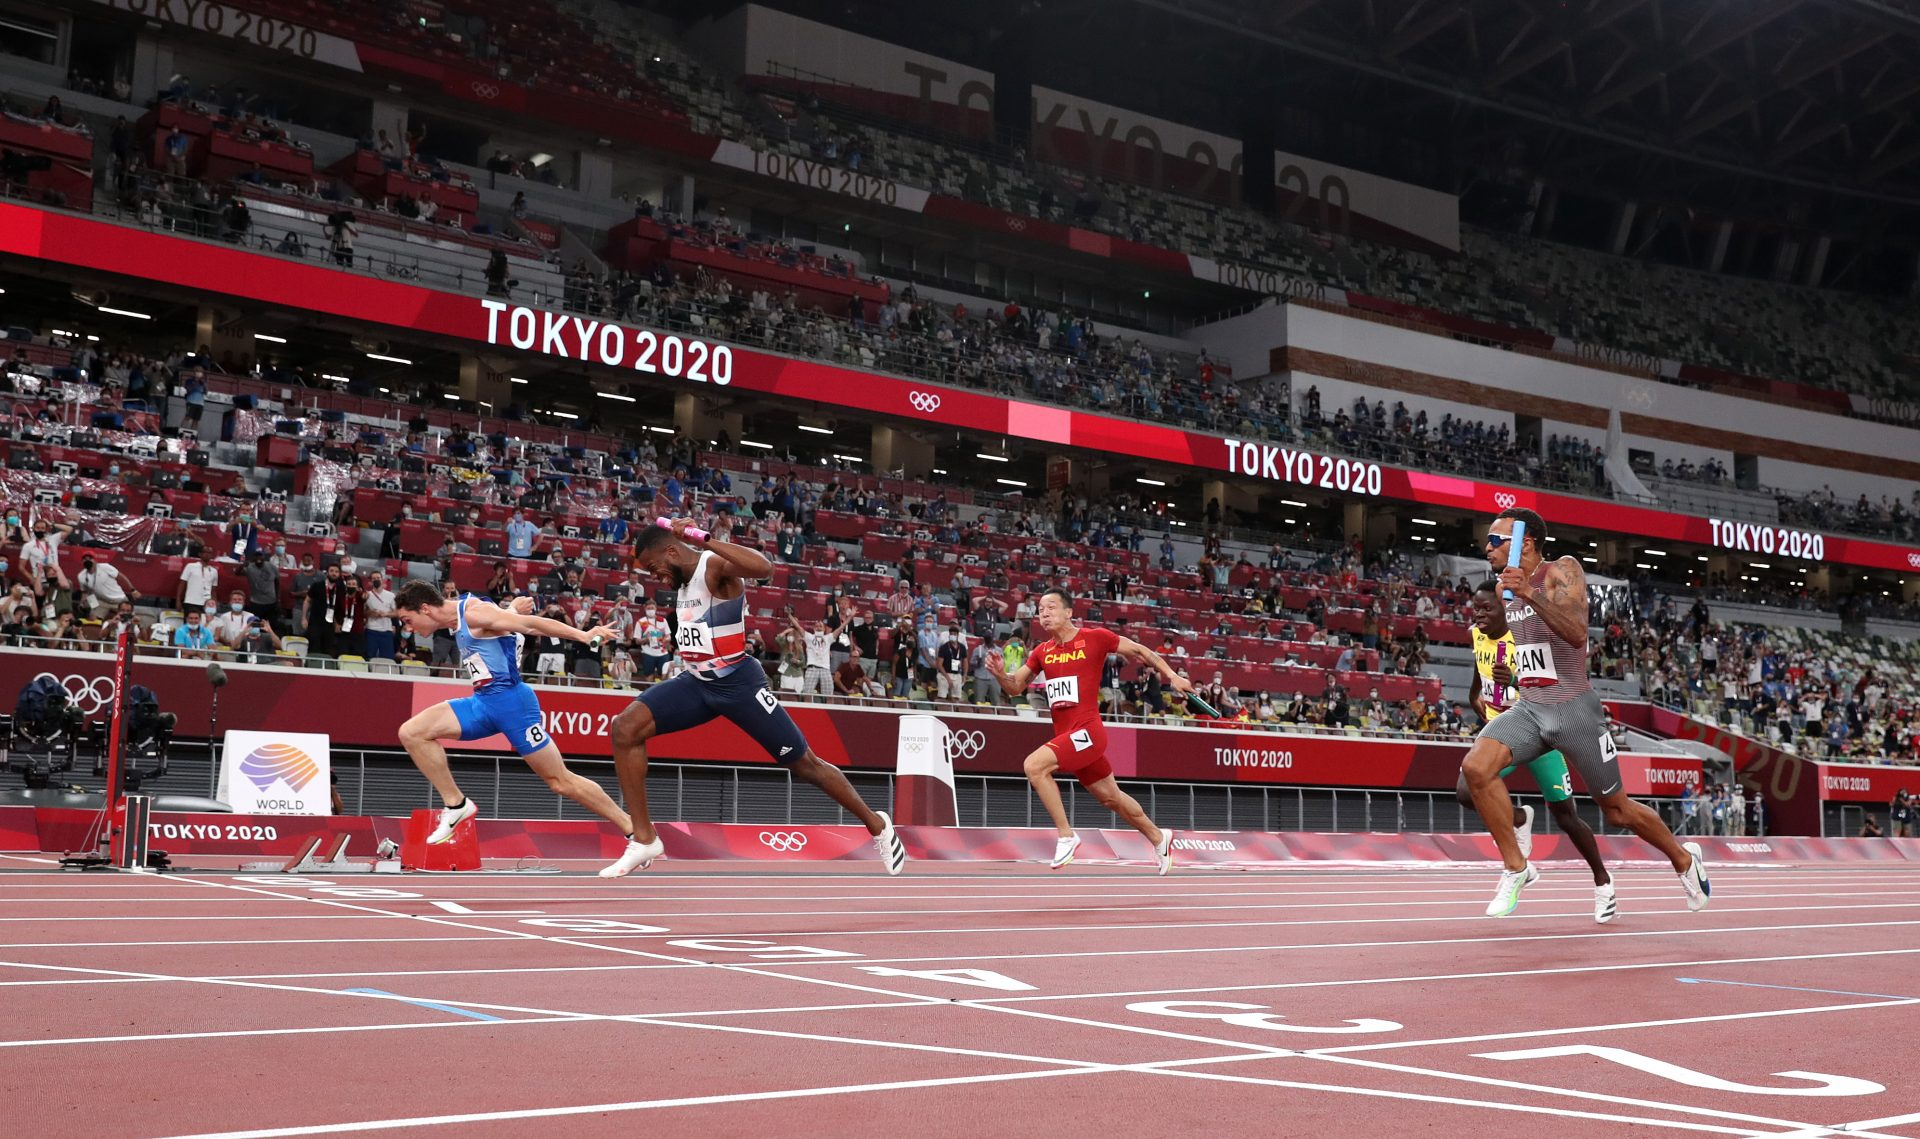 The close finish of theMen's 4 x 100m relay final at the Tokyo Olympics. Optimism helps drive Olympic success. Photograph: 2021 Getty Images.